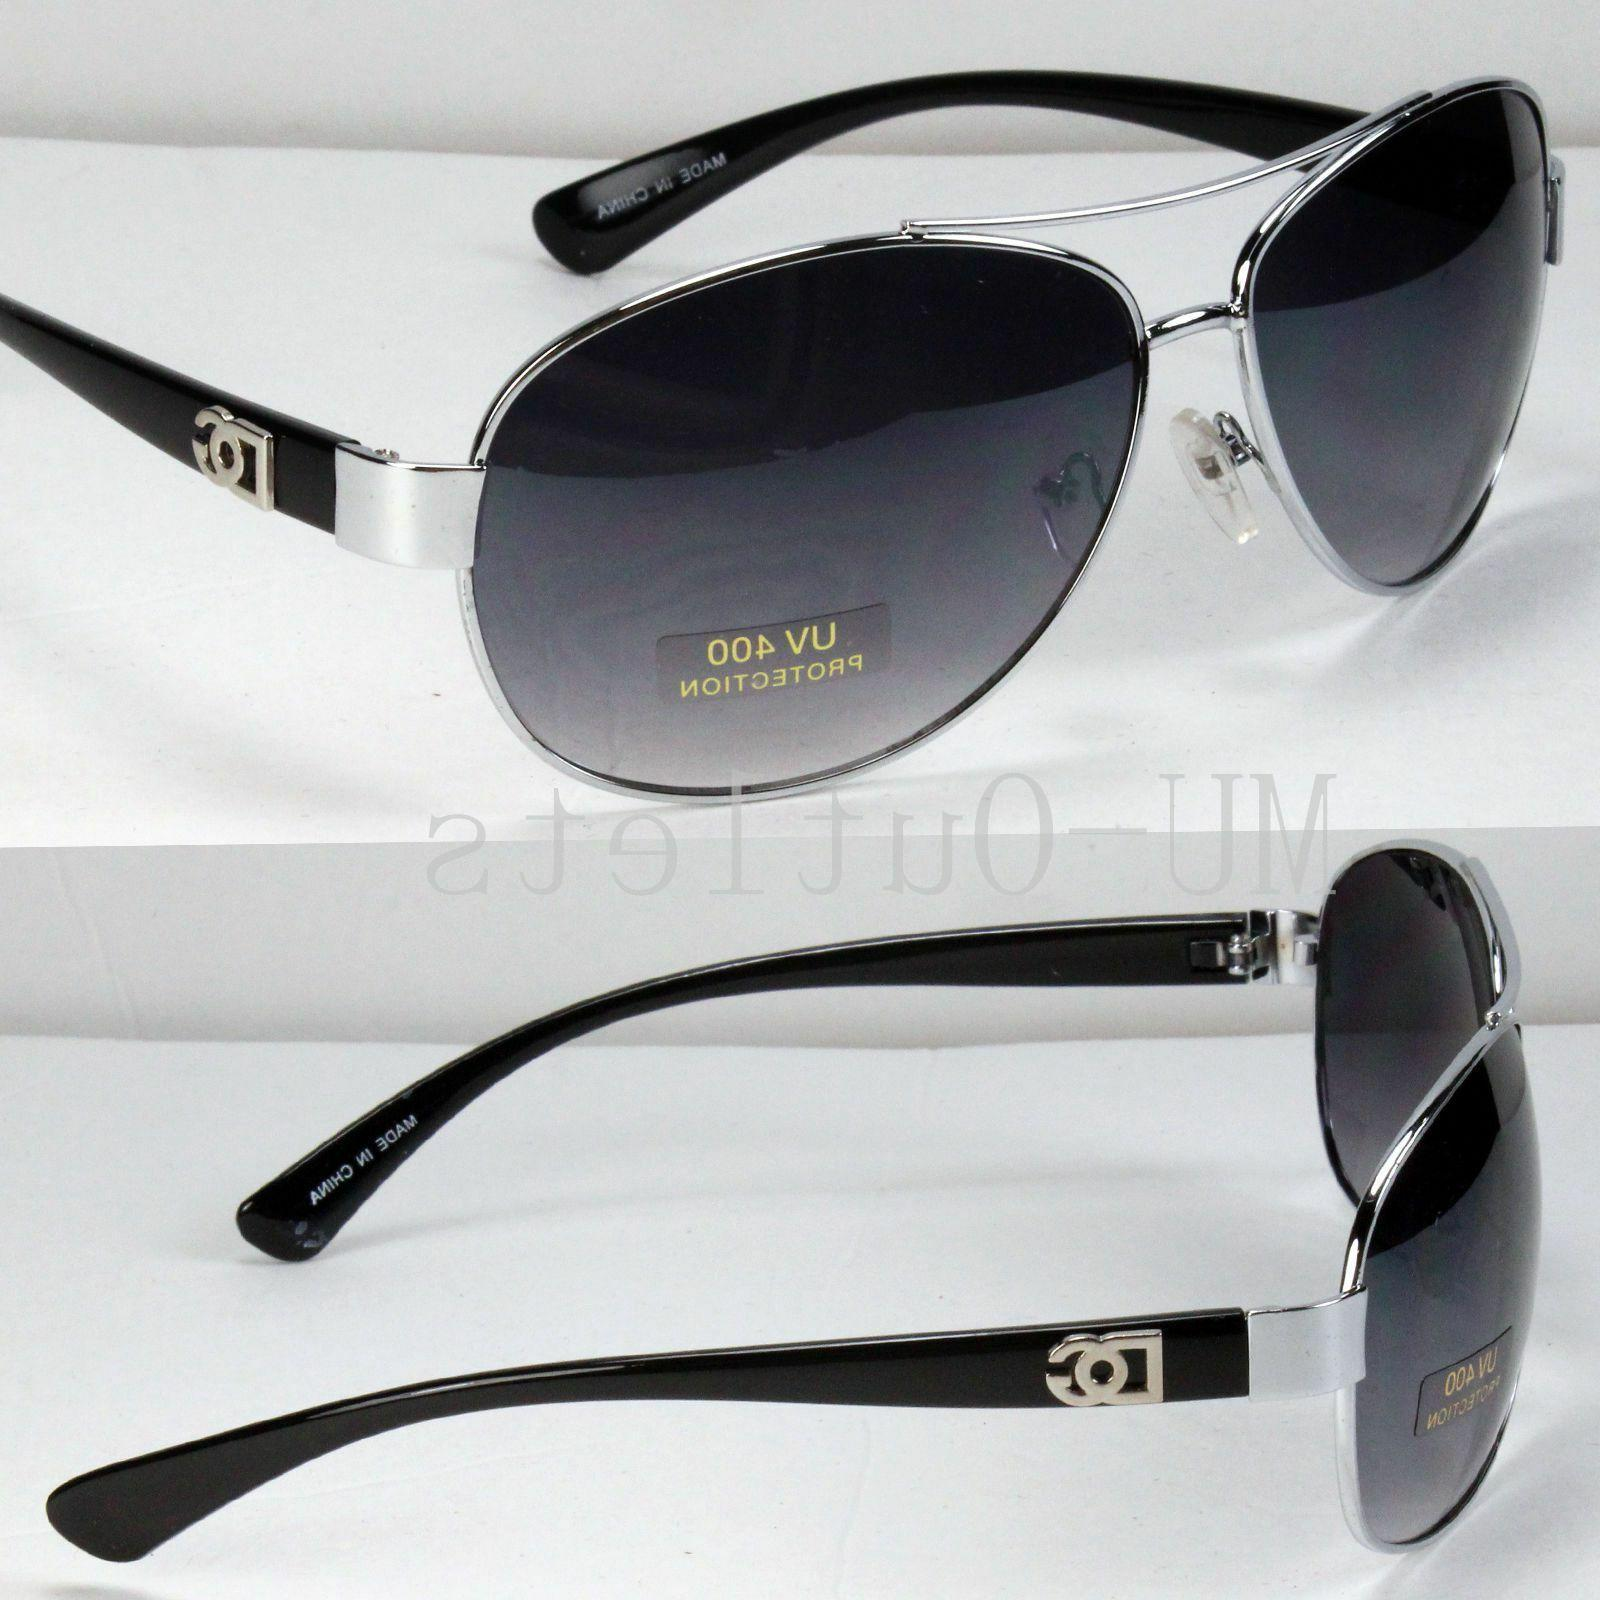 new aviator fashion designer sunglasses shades mens